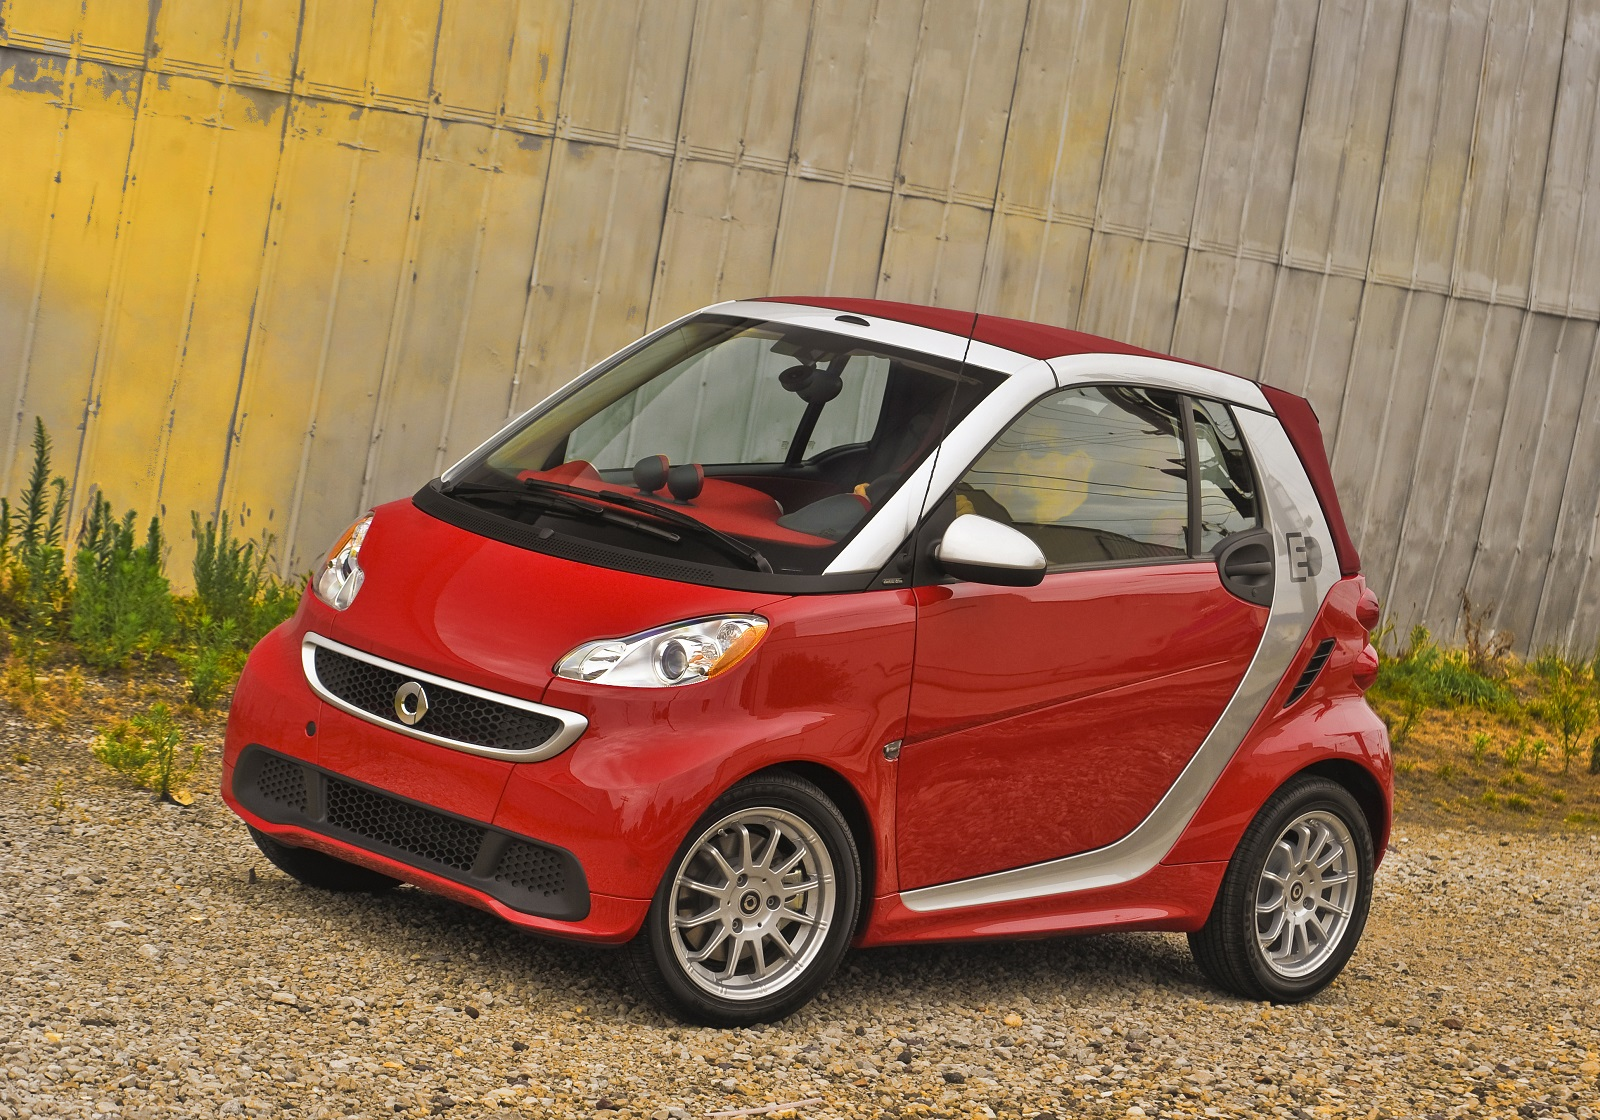 Tiny smart cars lose 5 billion for mercedes benz report for Mercedes benz smart fortwo